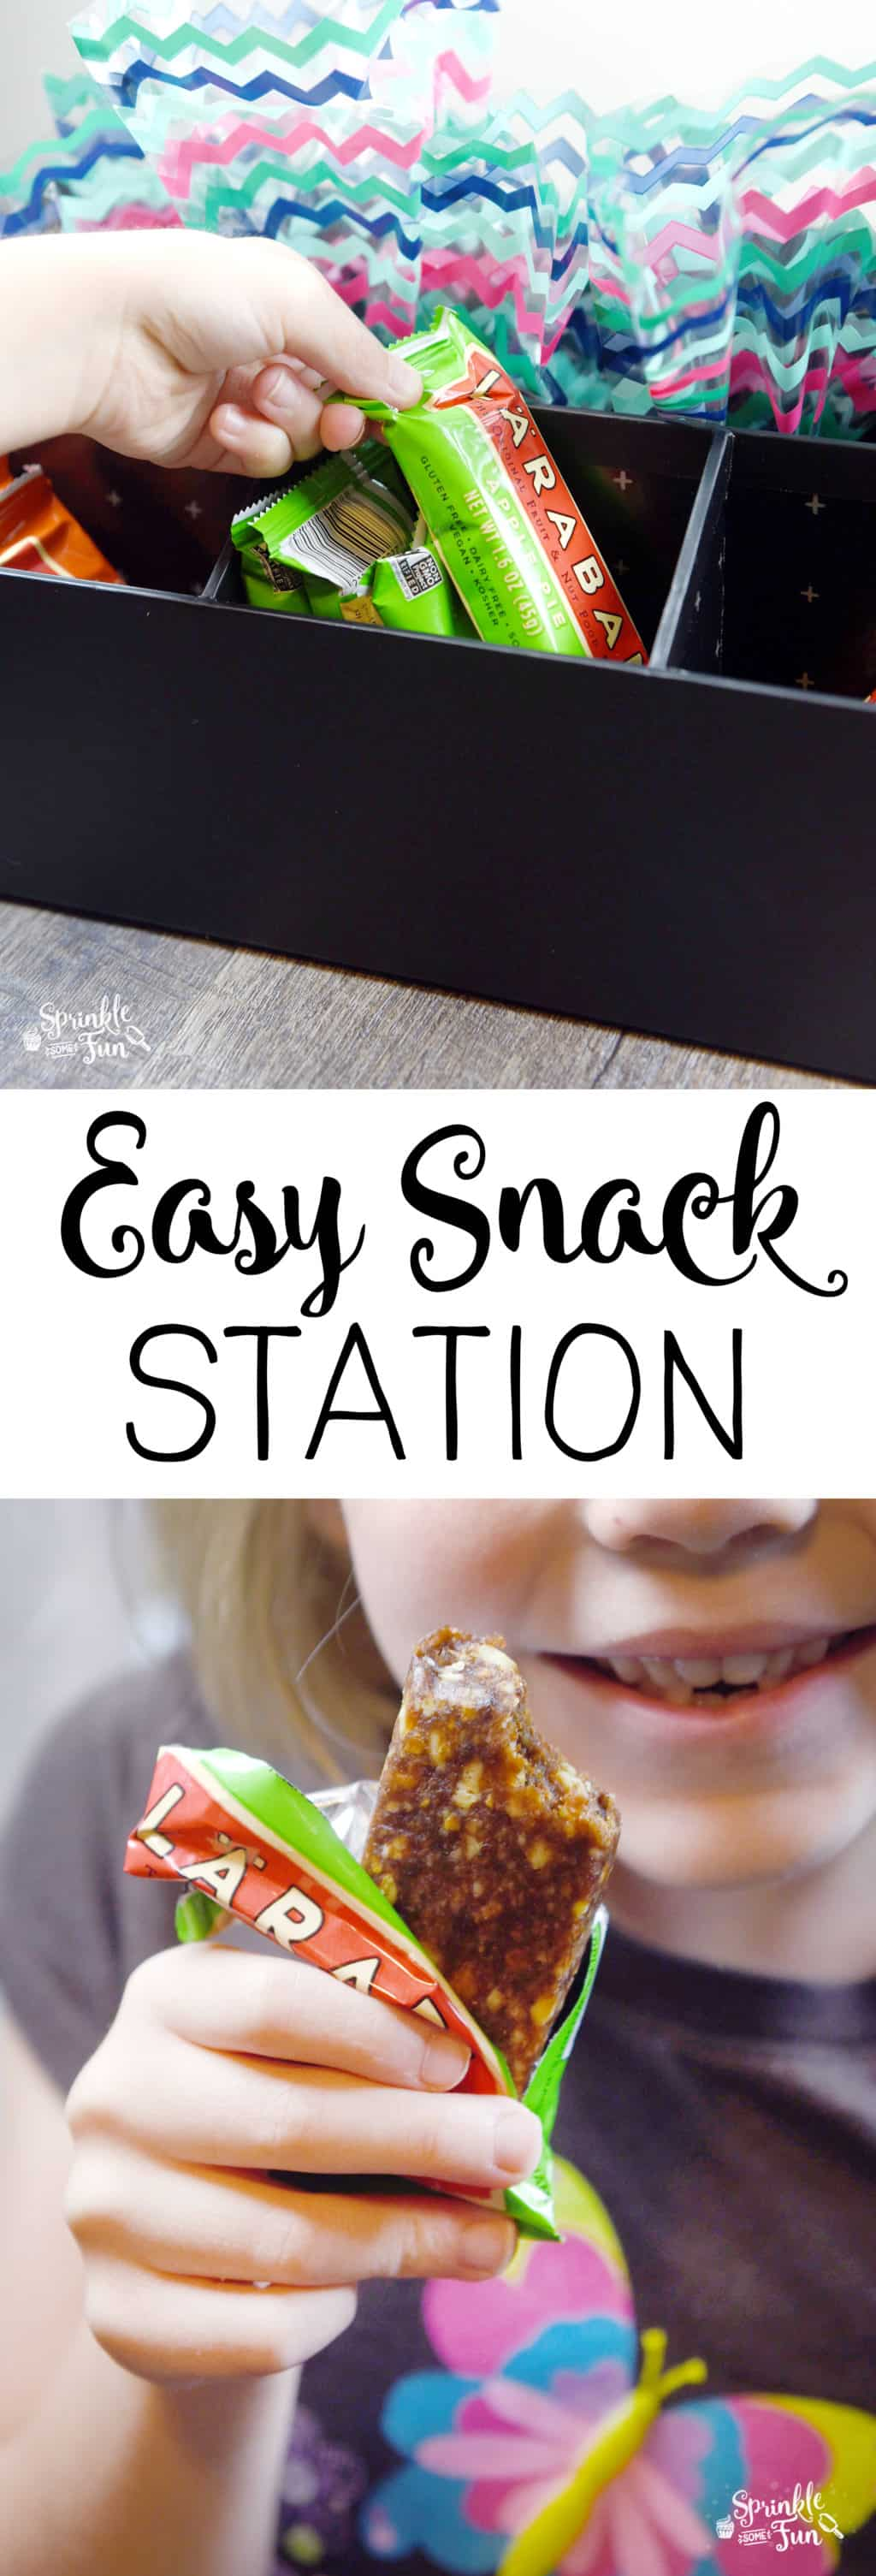 I don't mind my kids having a simple snack, but I've decided that it's best to have an easy snack station so they can grab their own snacks.